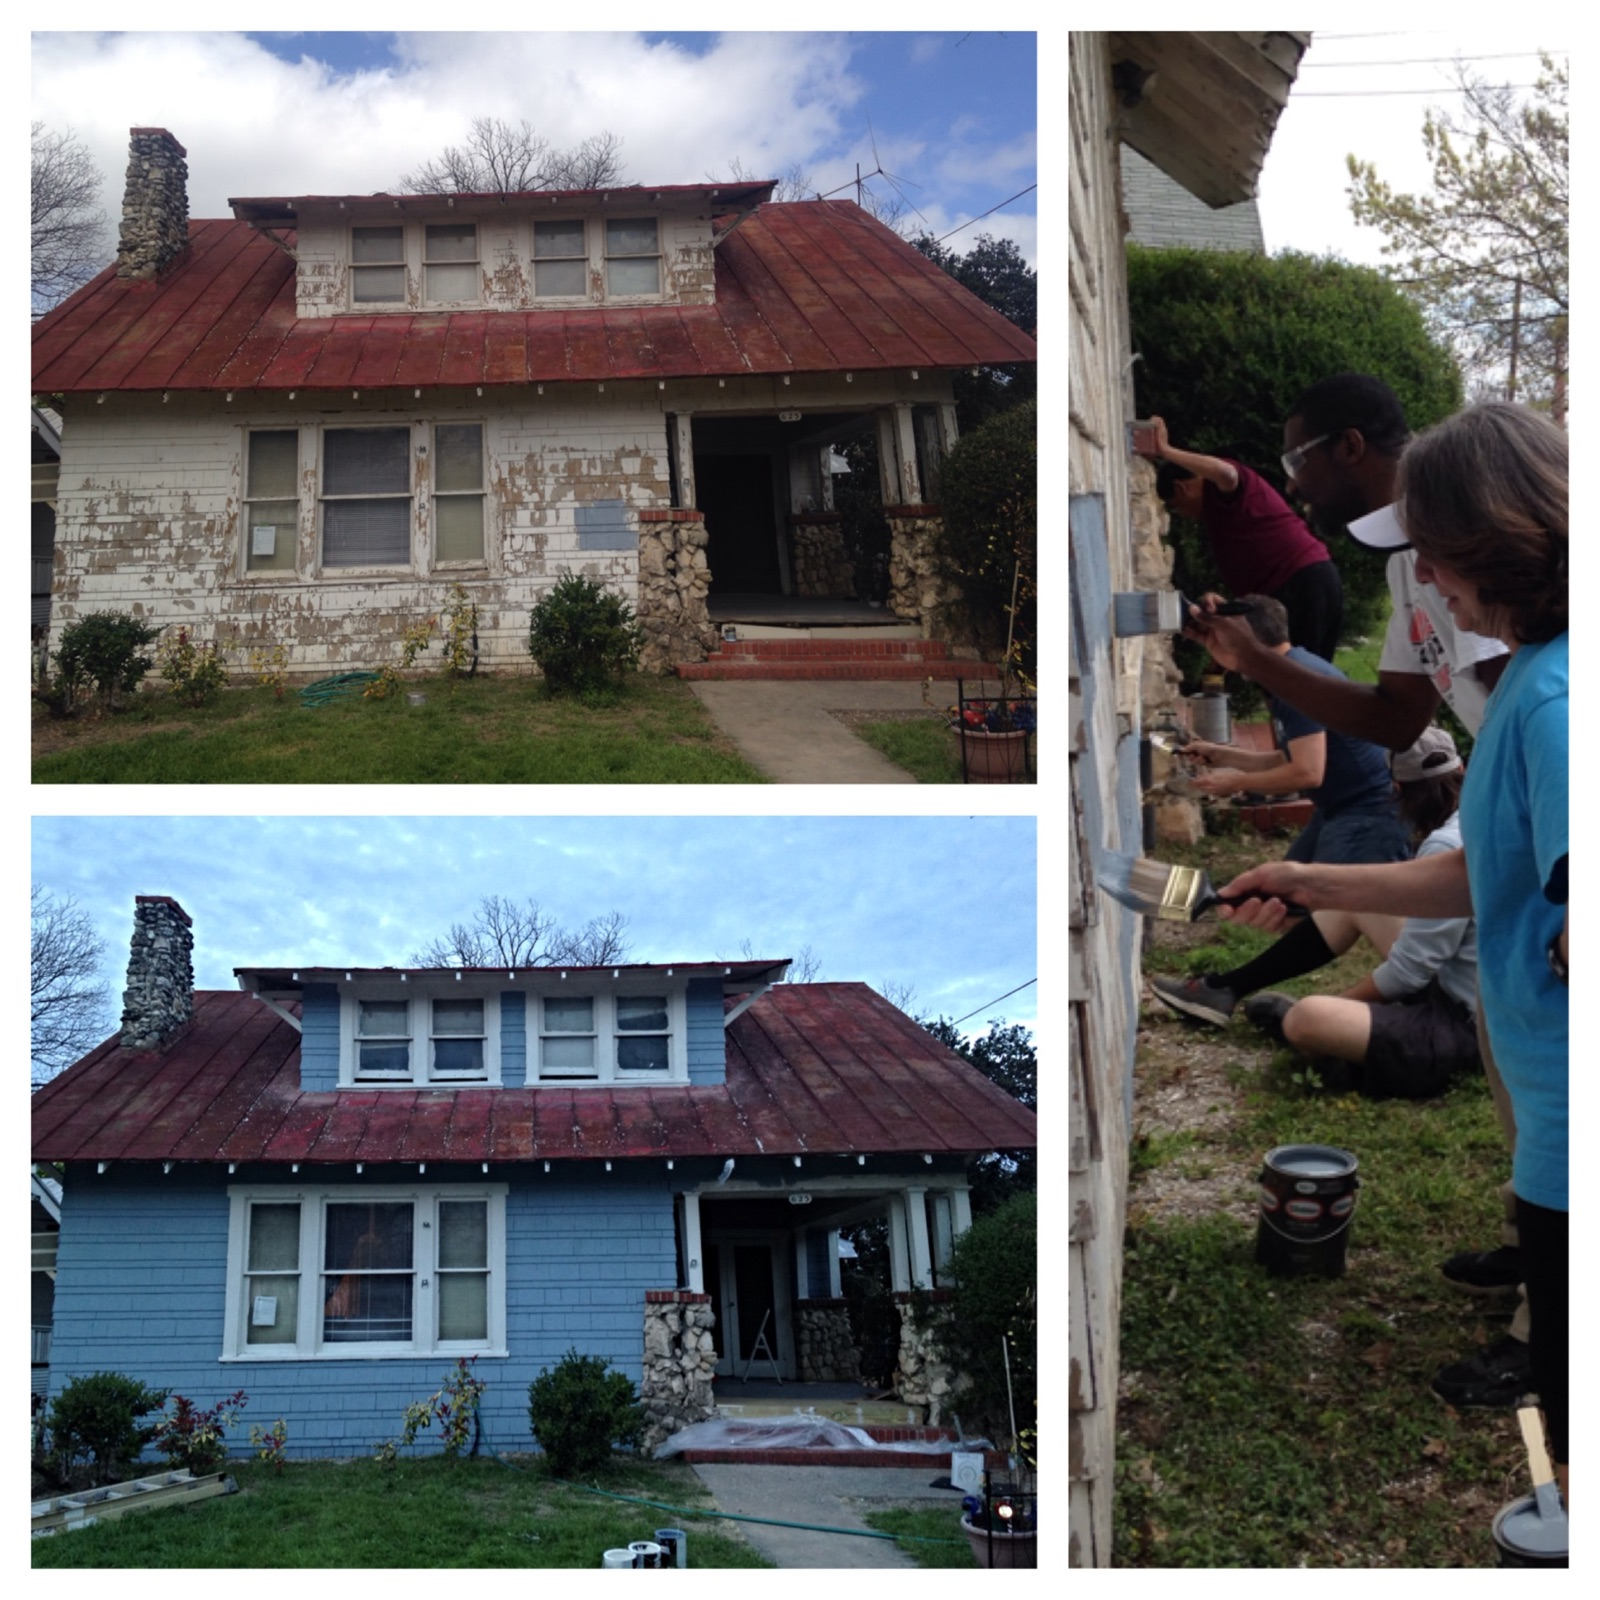 CEC volunteers joined forces with the Tobin Hill Association to refurbish a home in February. After rain delays, the project was completed March 15, 2015.